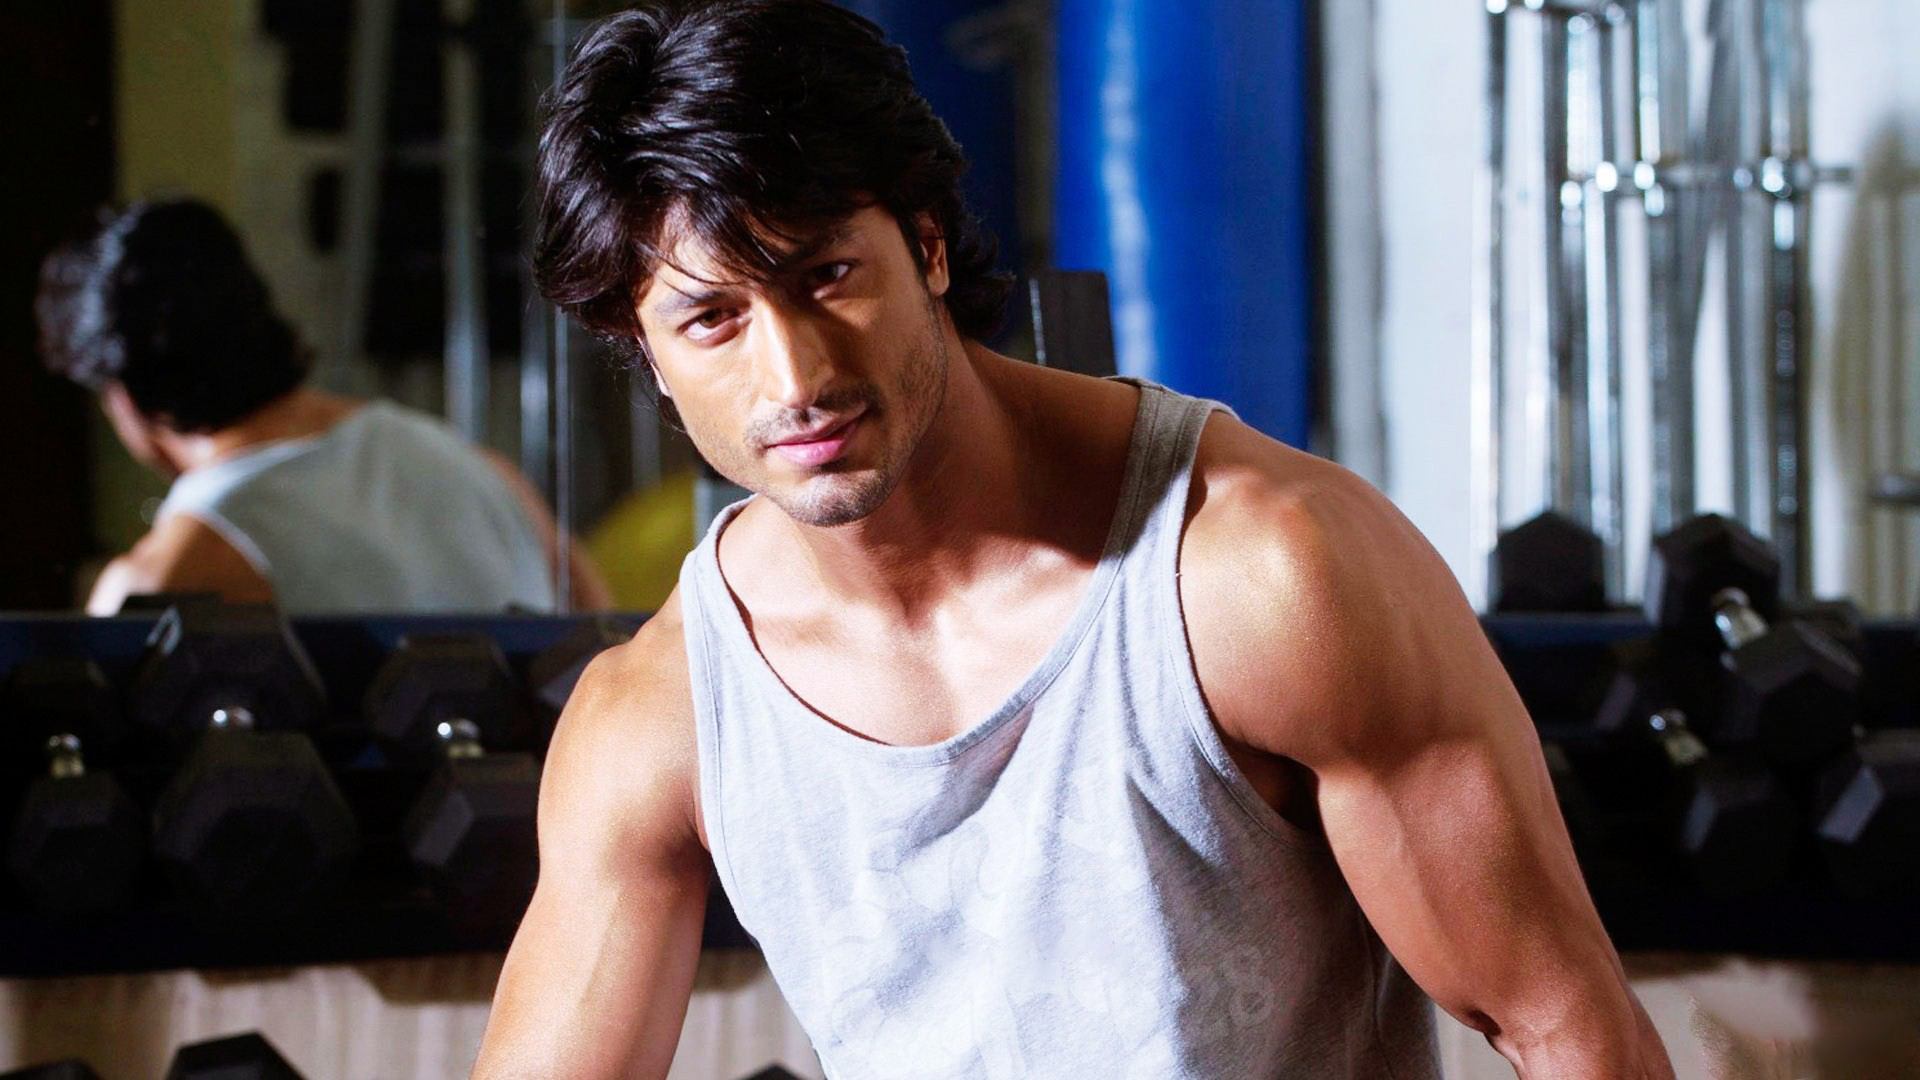 fantastic vidyut jamwal cute face free mobile background download hd images